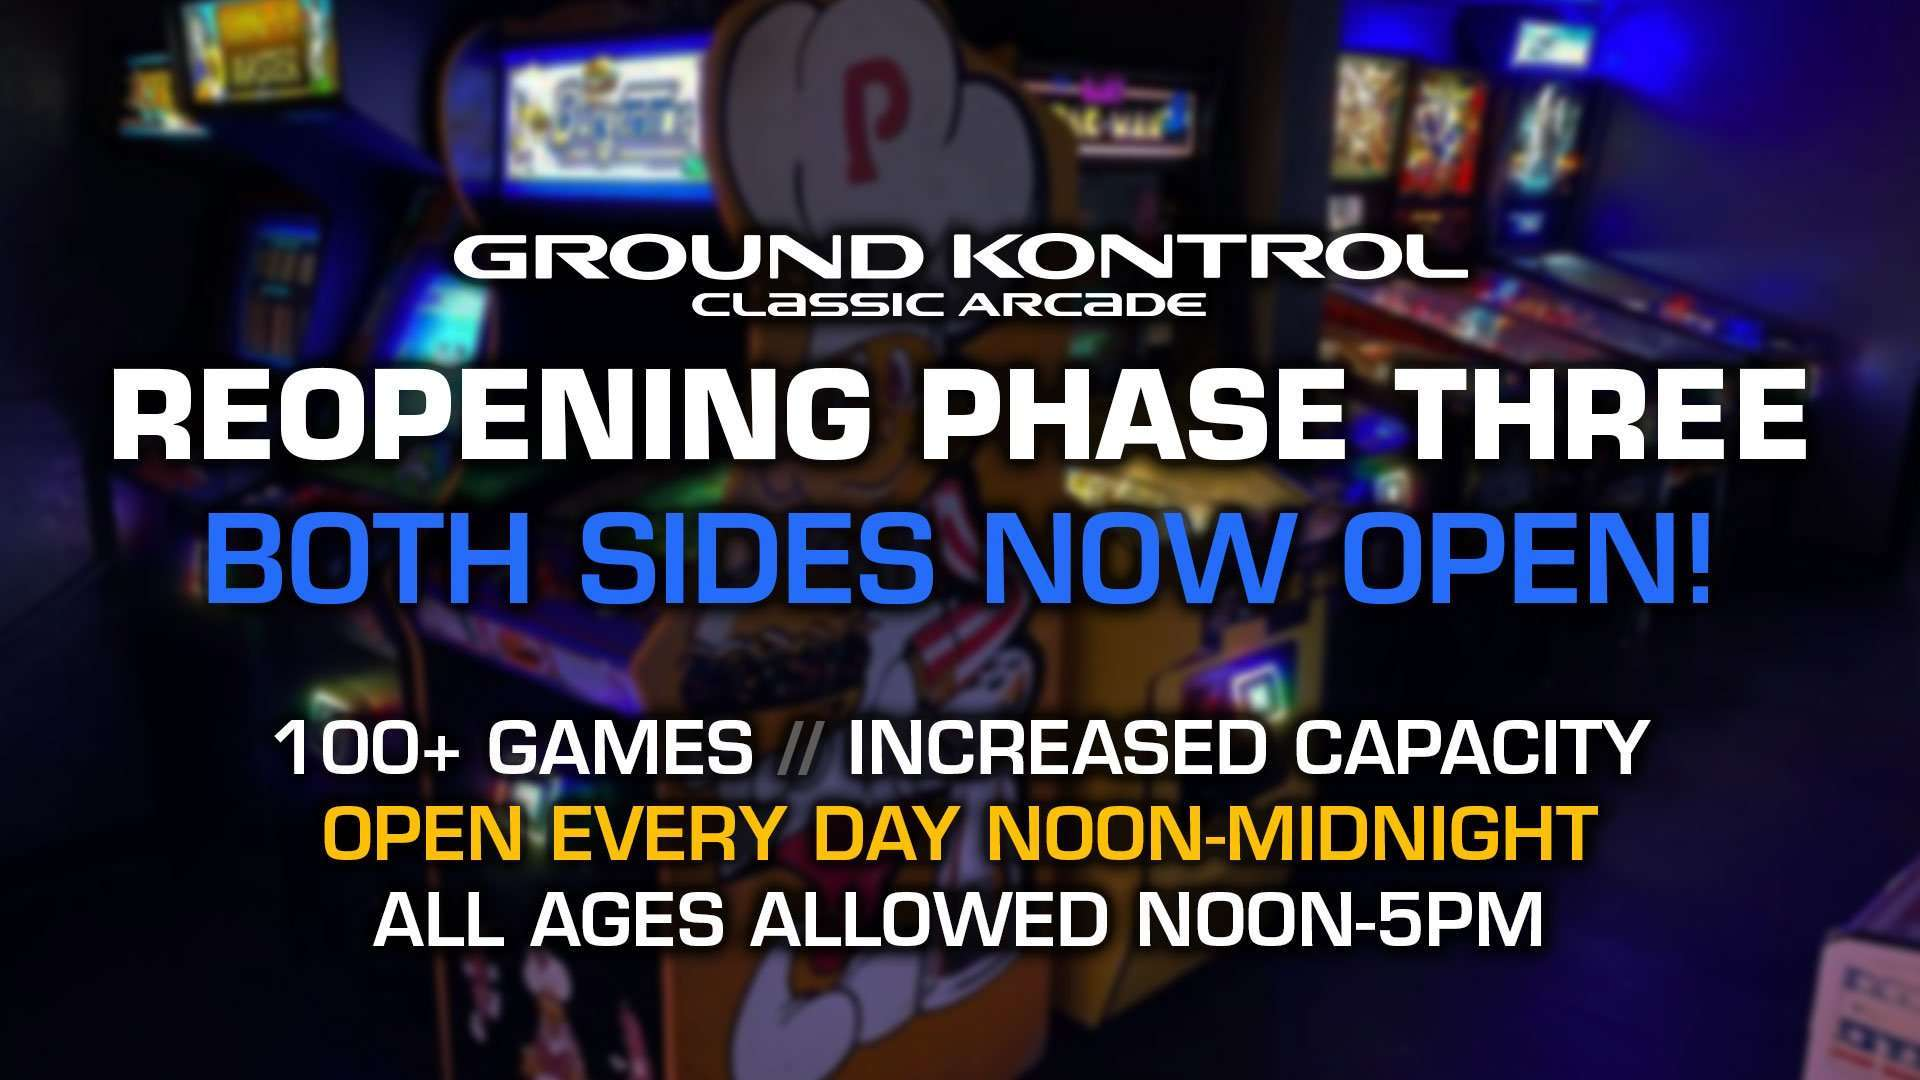 Phase Three Reopening Information